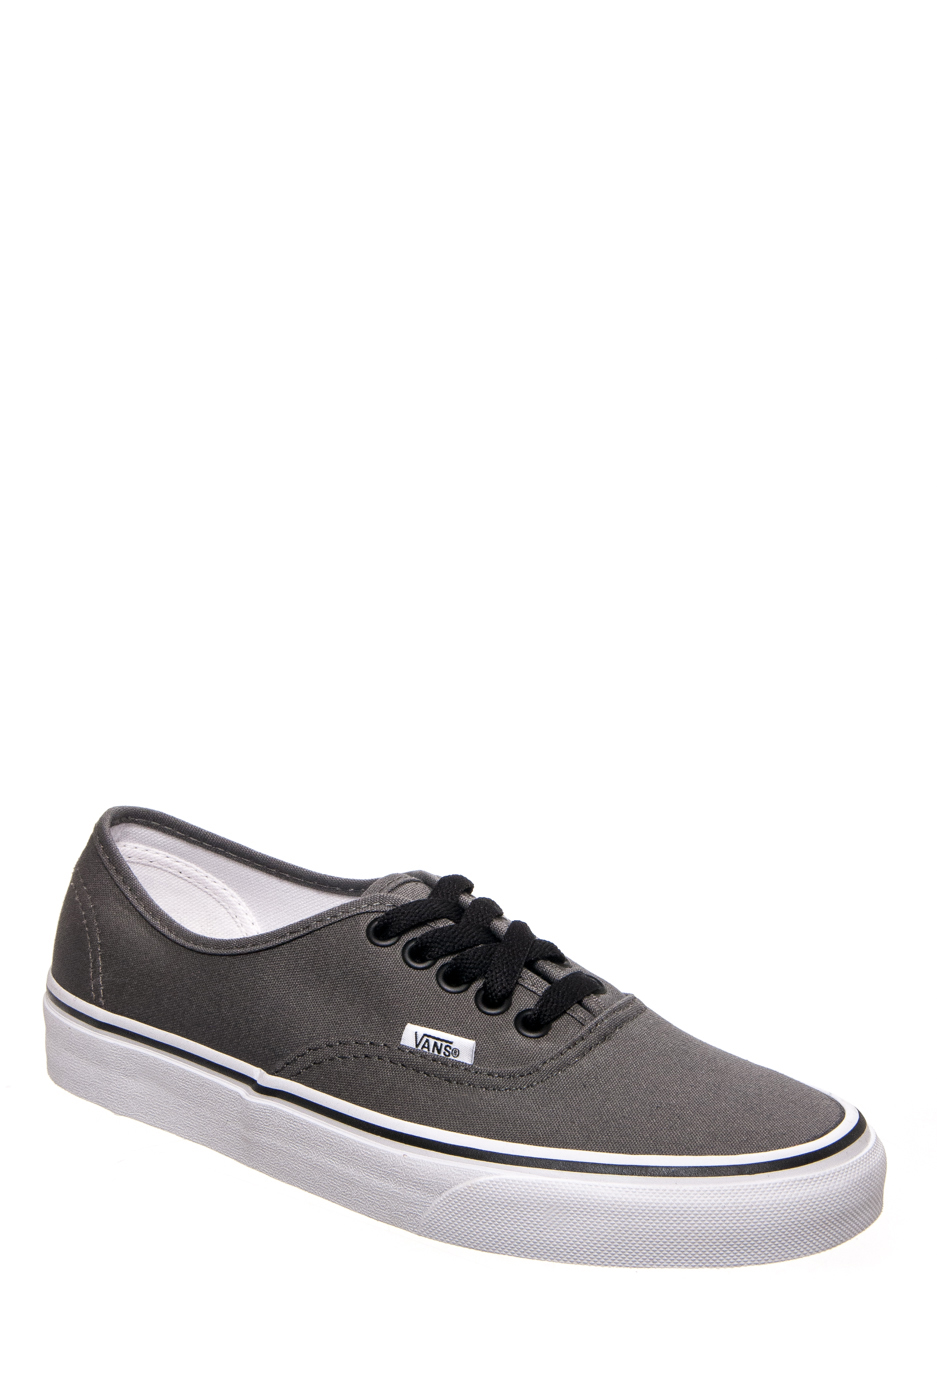 VANS Unisex Authentic Low Top Sneakers - Pewter / Black